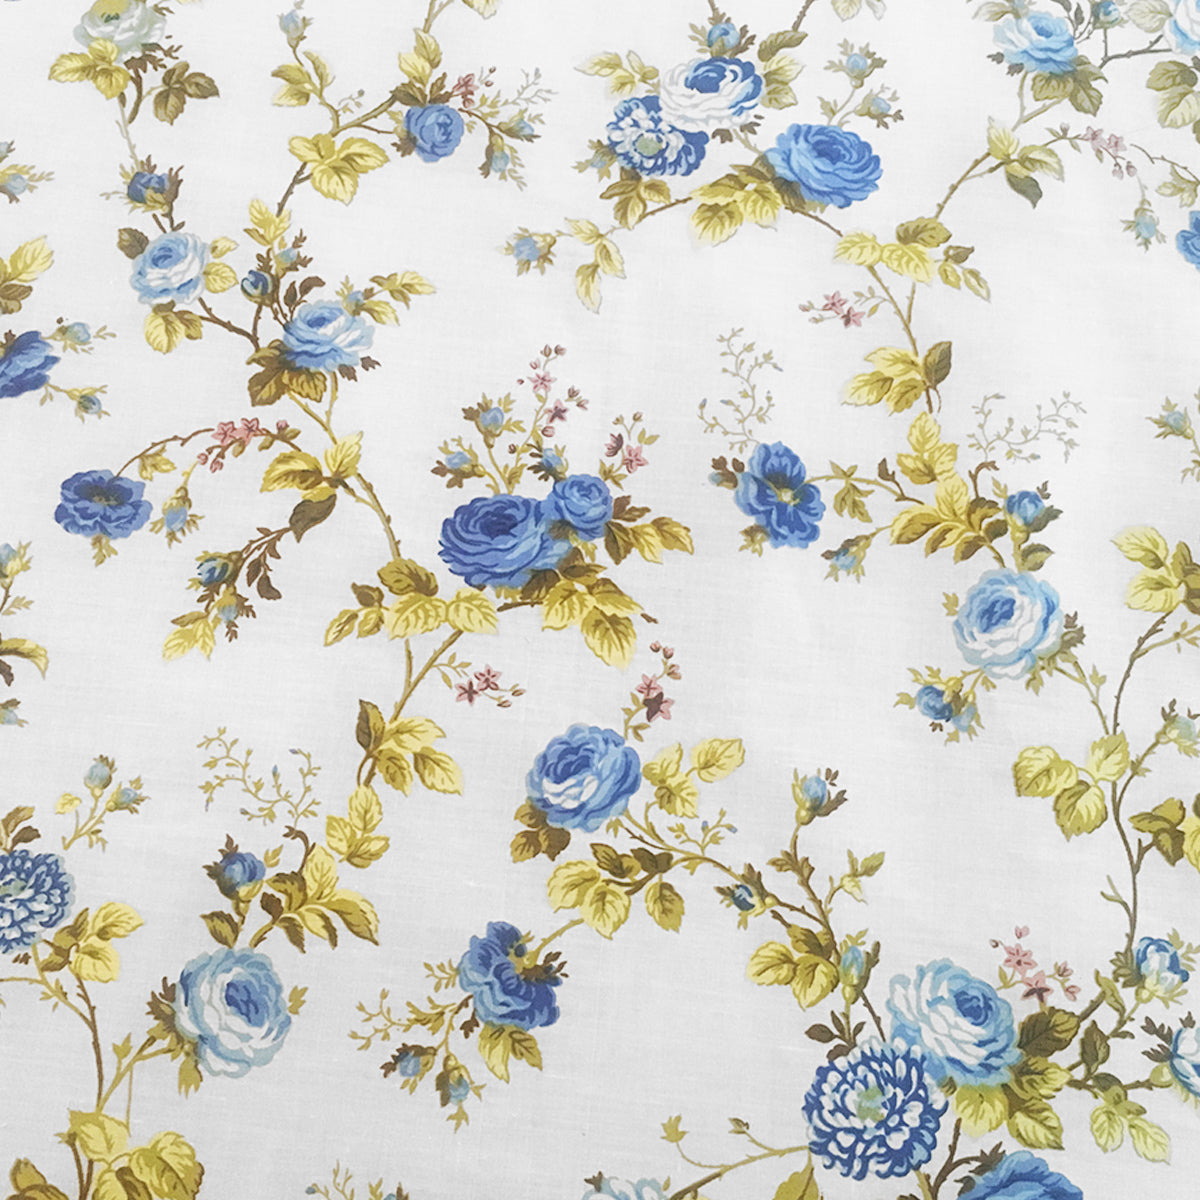 Cotton Vintage Floral Tablecloth Blue On White Lovemyfabric